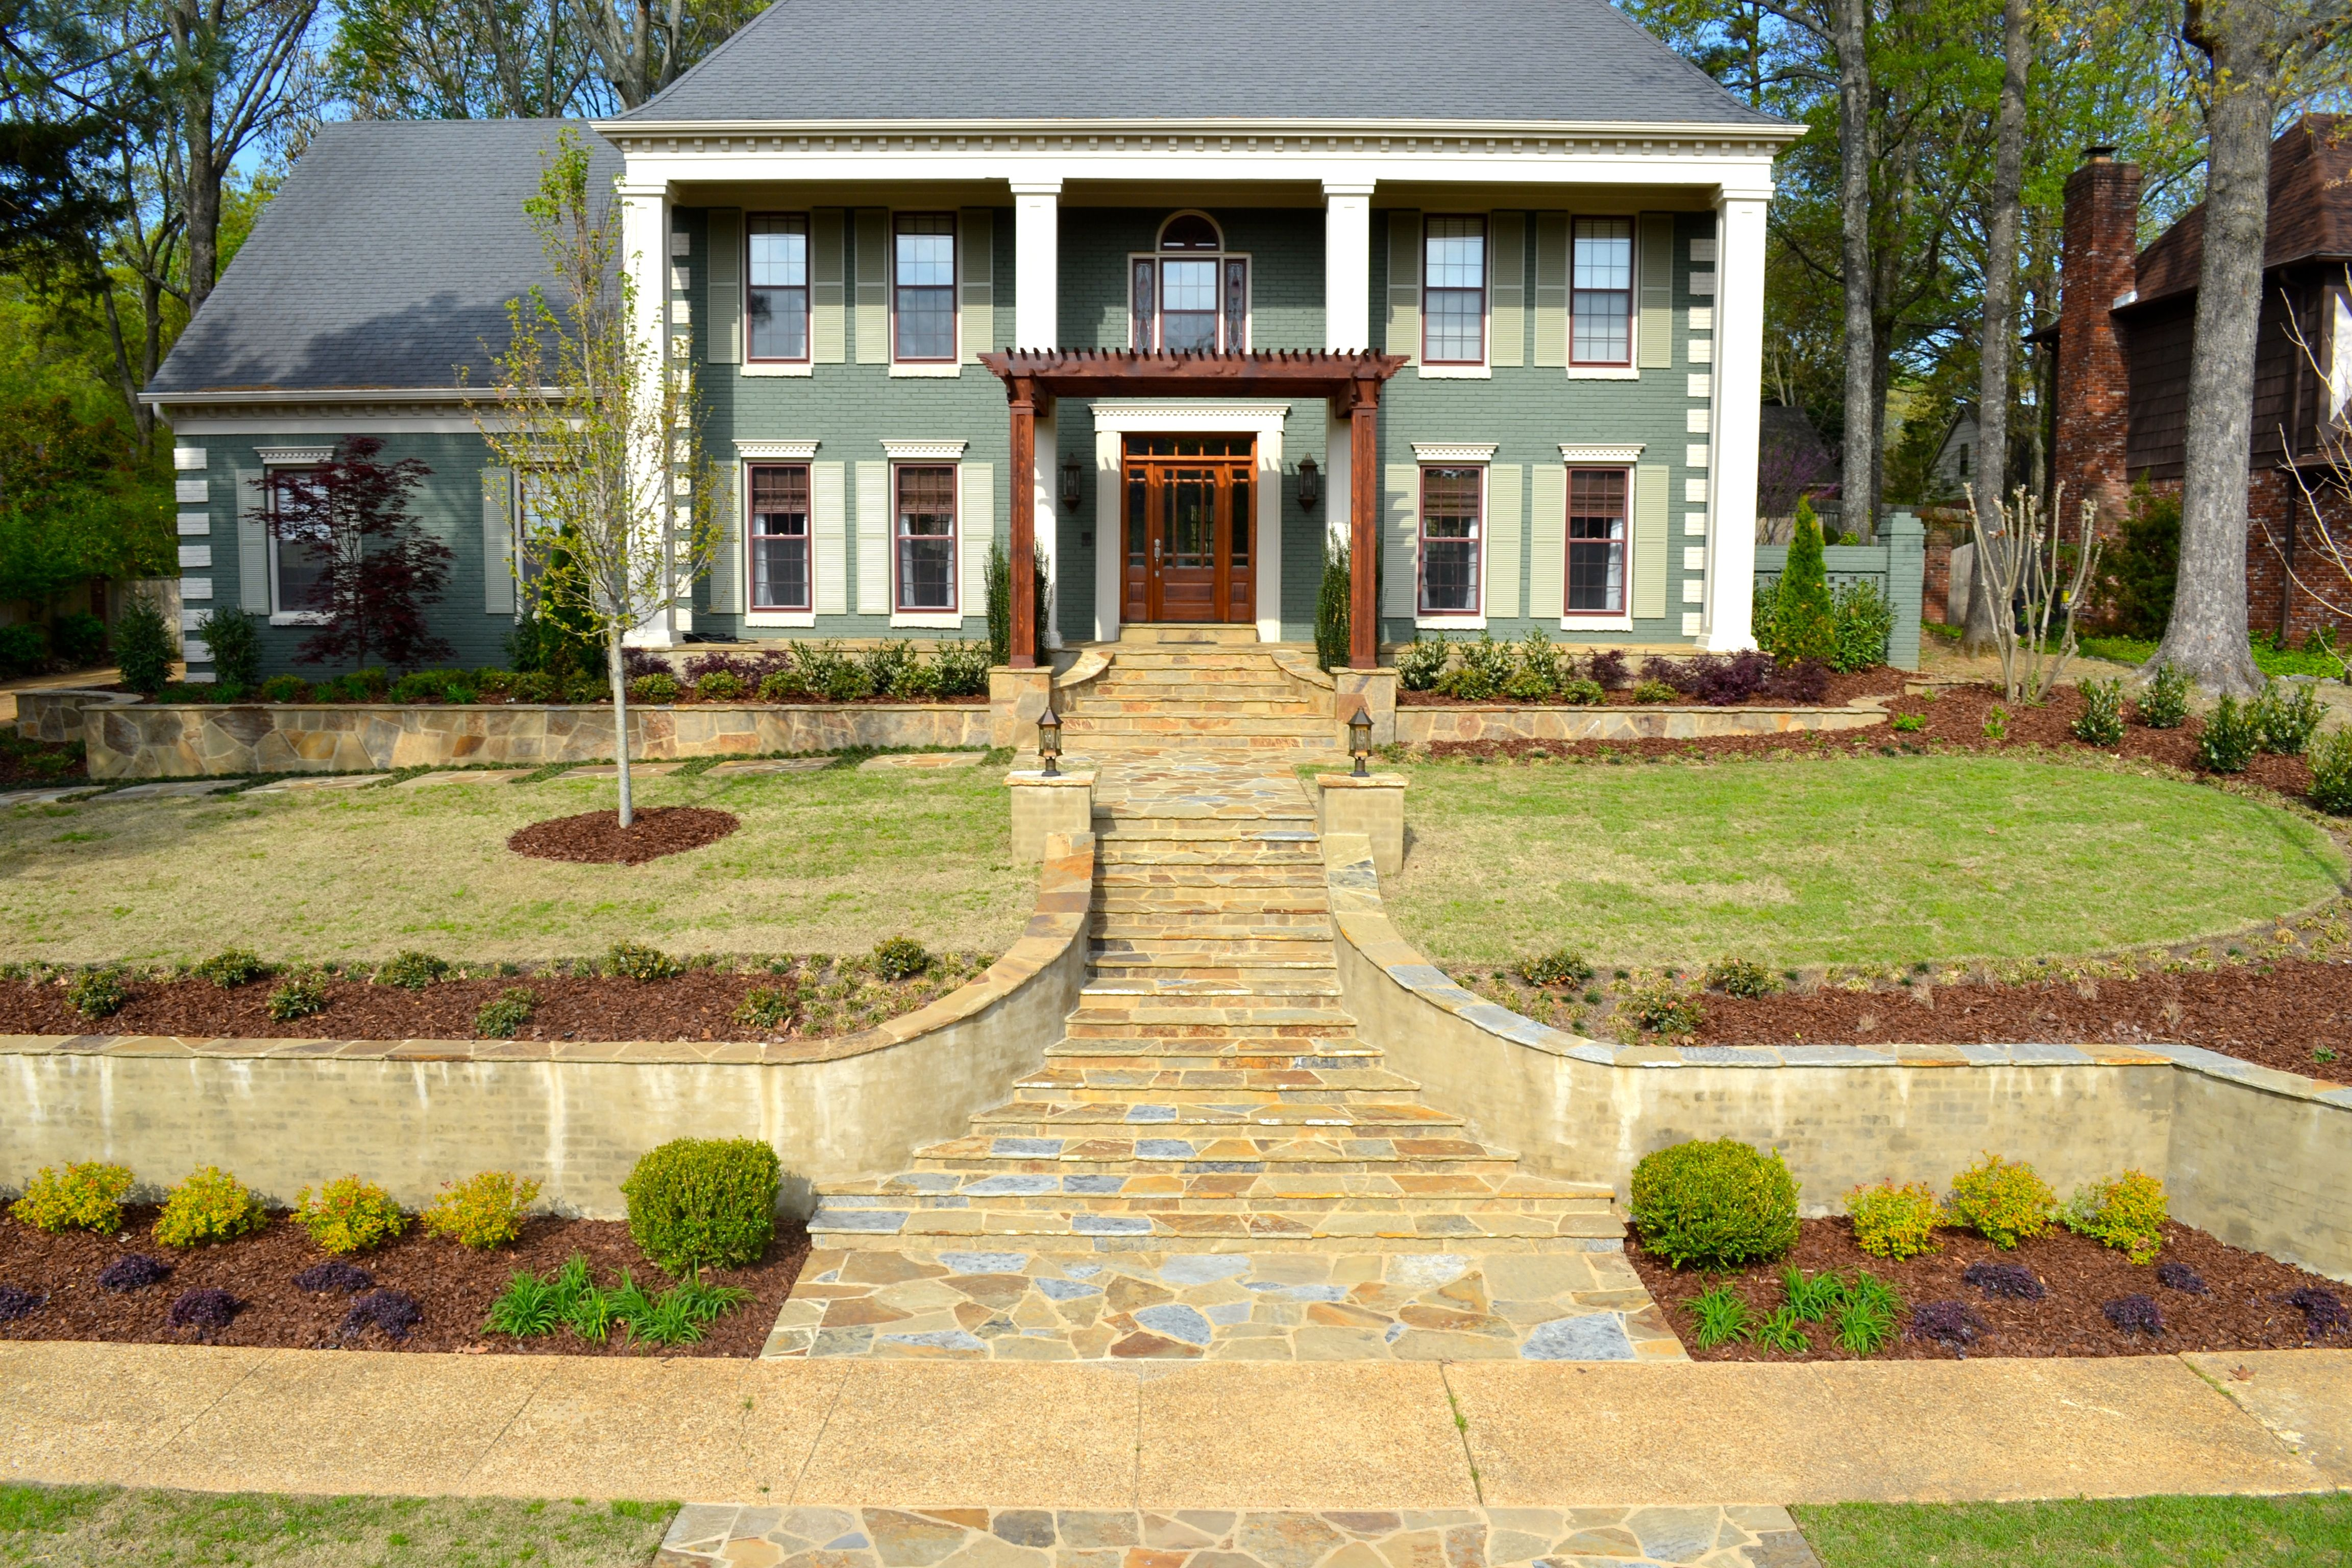 Pin by Chasity Goodson on front yard | Pinterest | Curb appeal ...